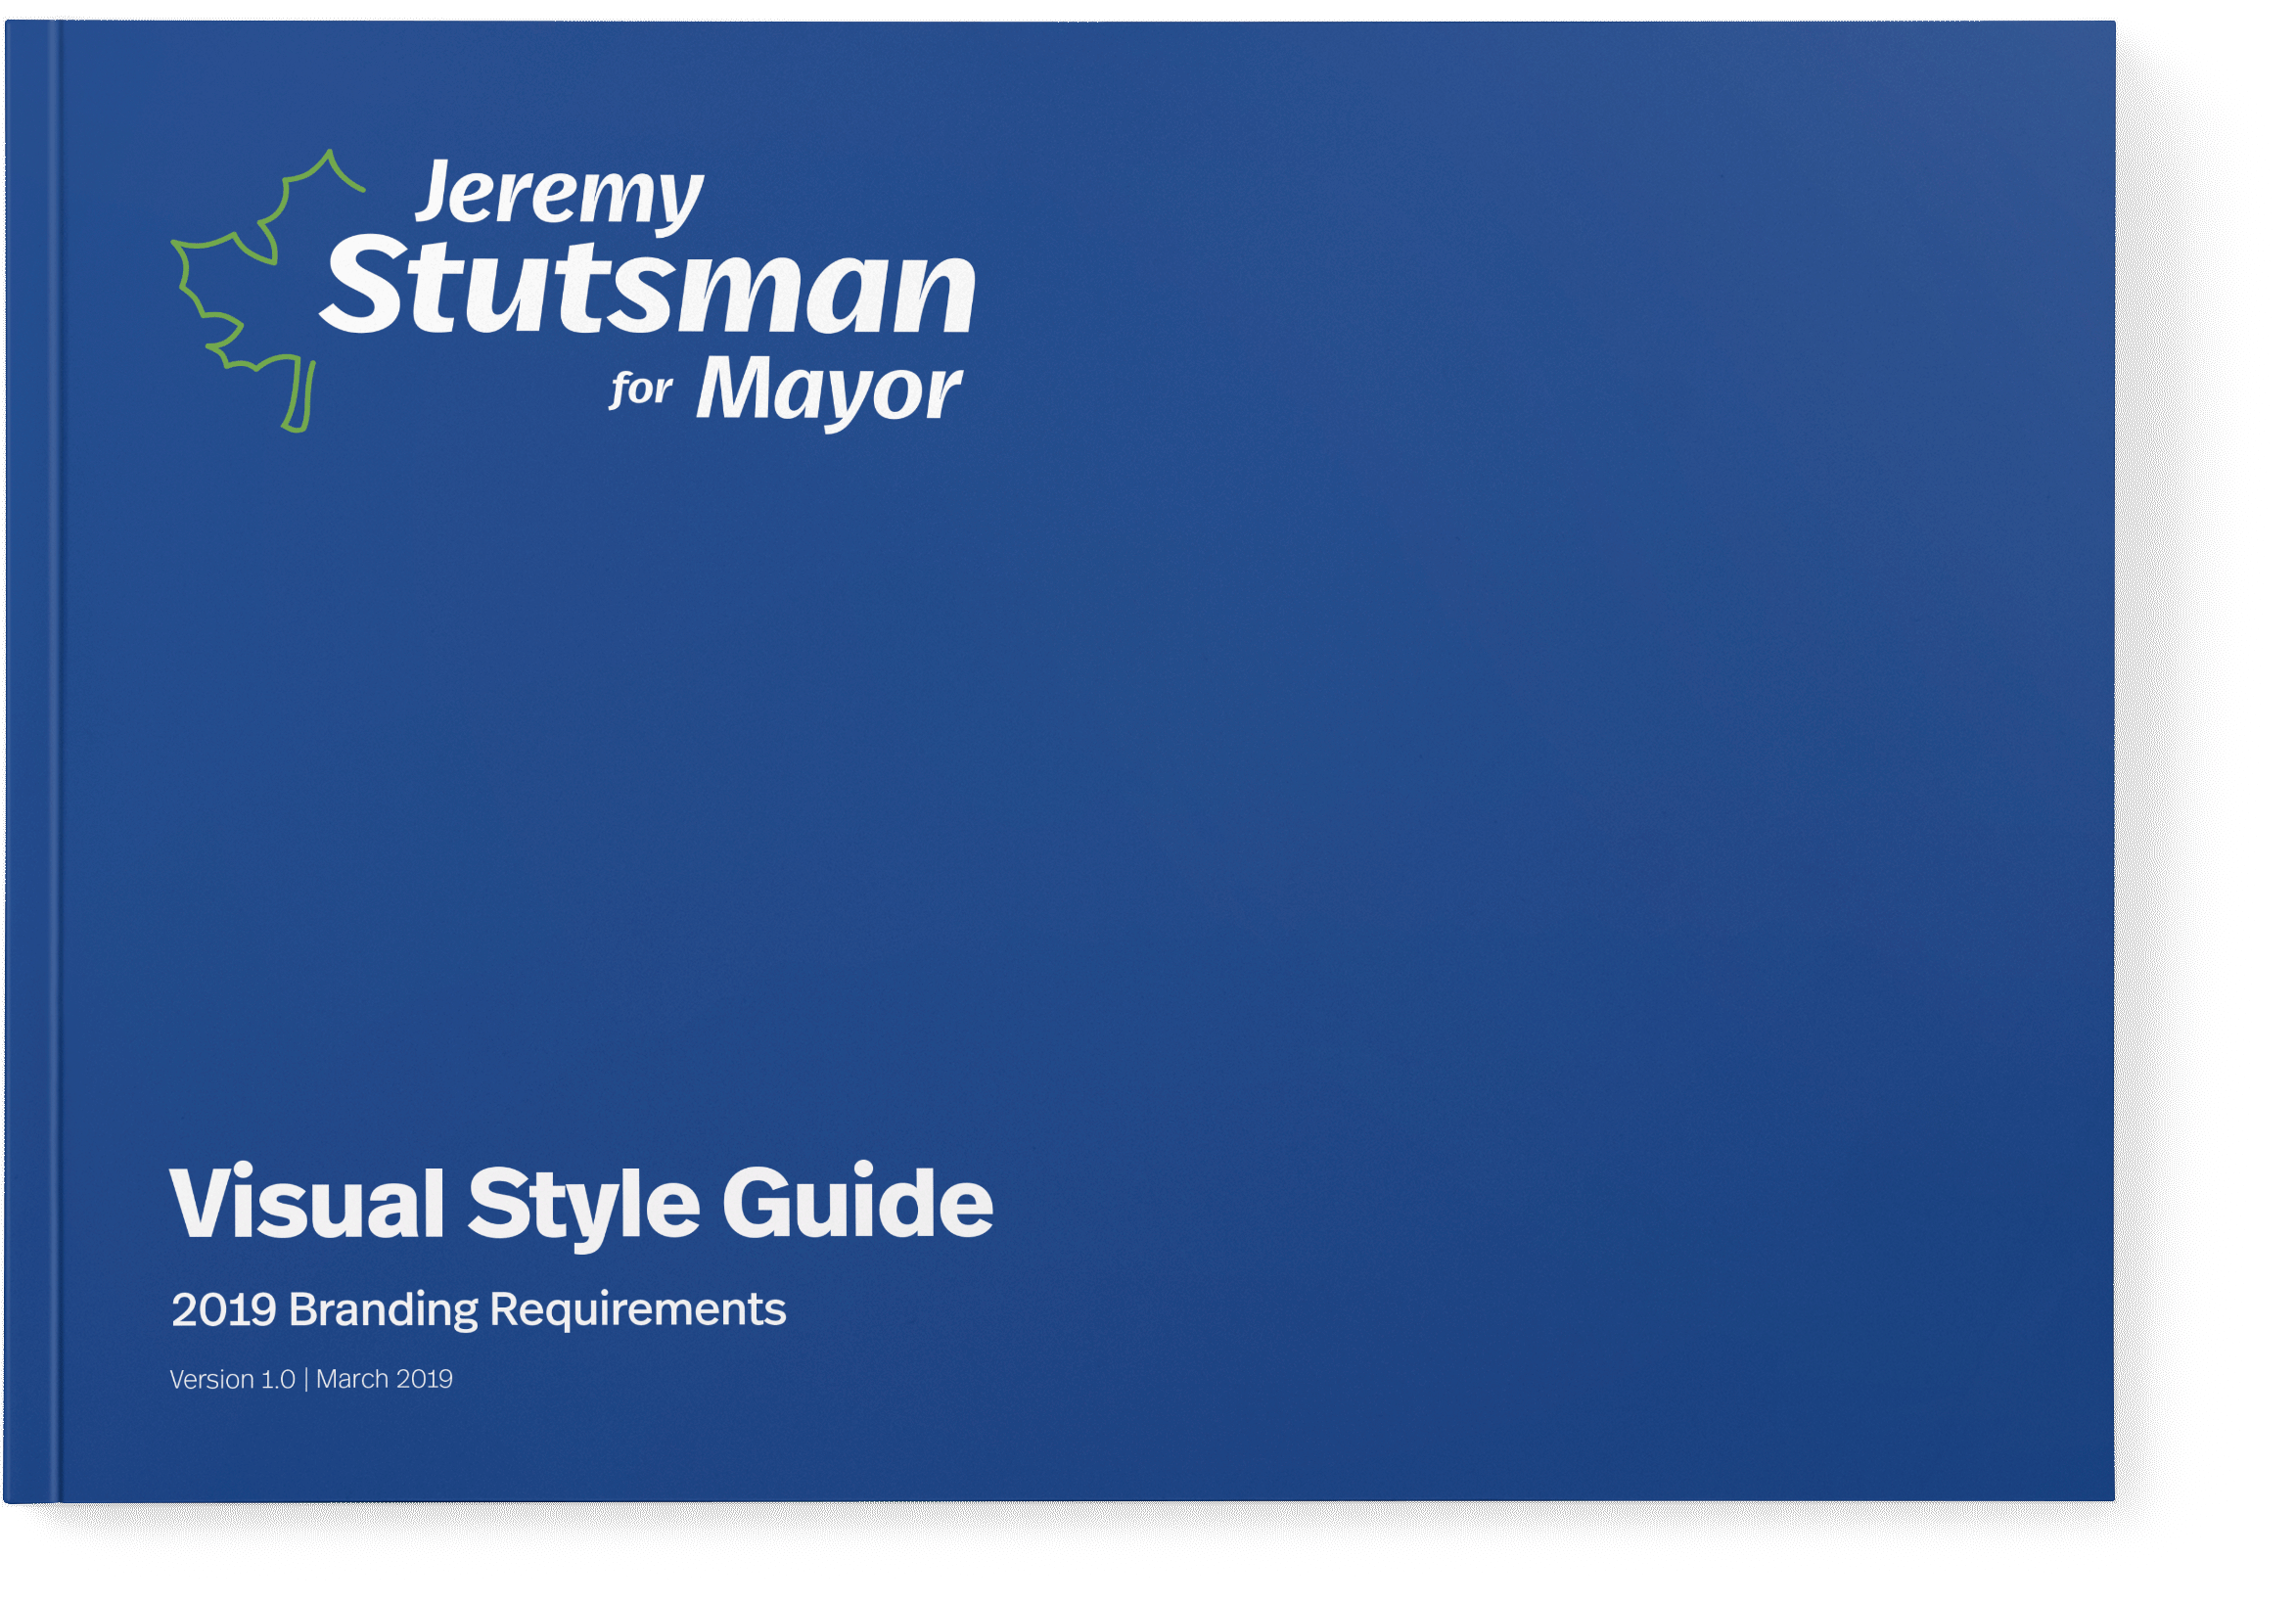 Stutsman for Mayor Brand Book Front Cover